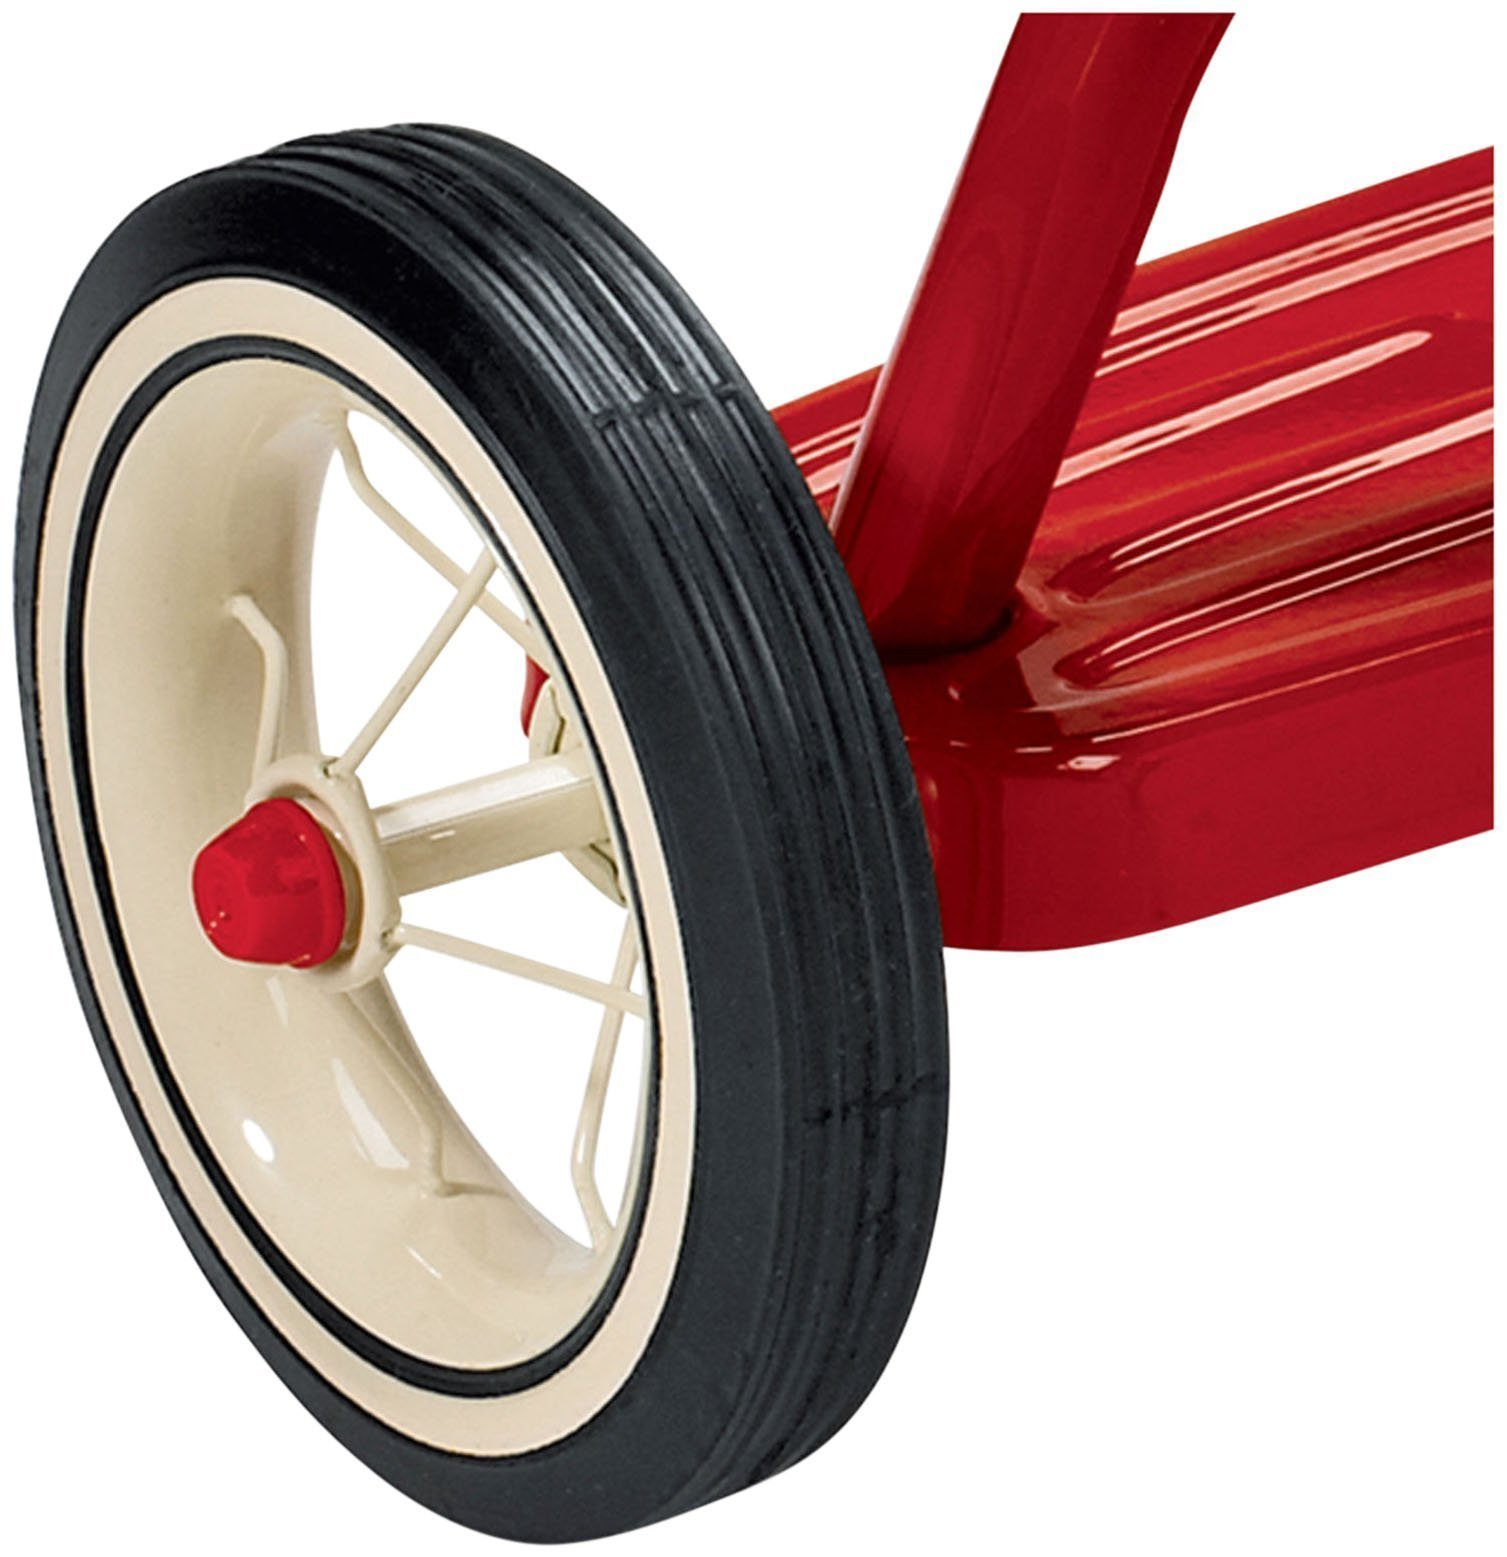 Radio Flyer Classic Red Dual Deck Tricycle by Radio Flyer (Image #4)